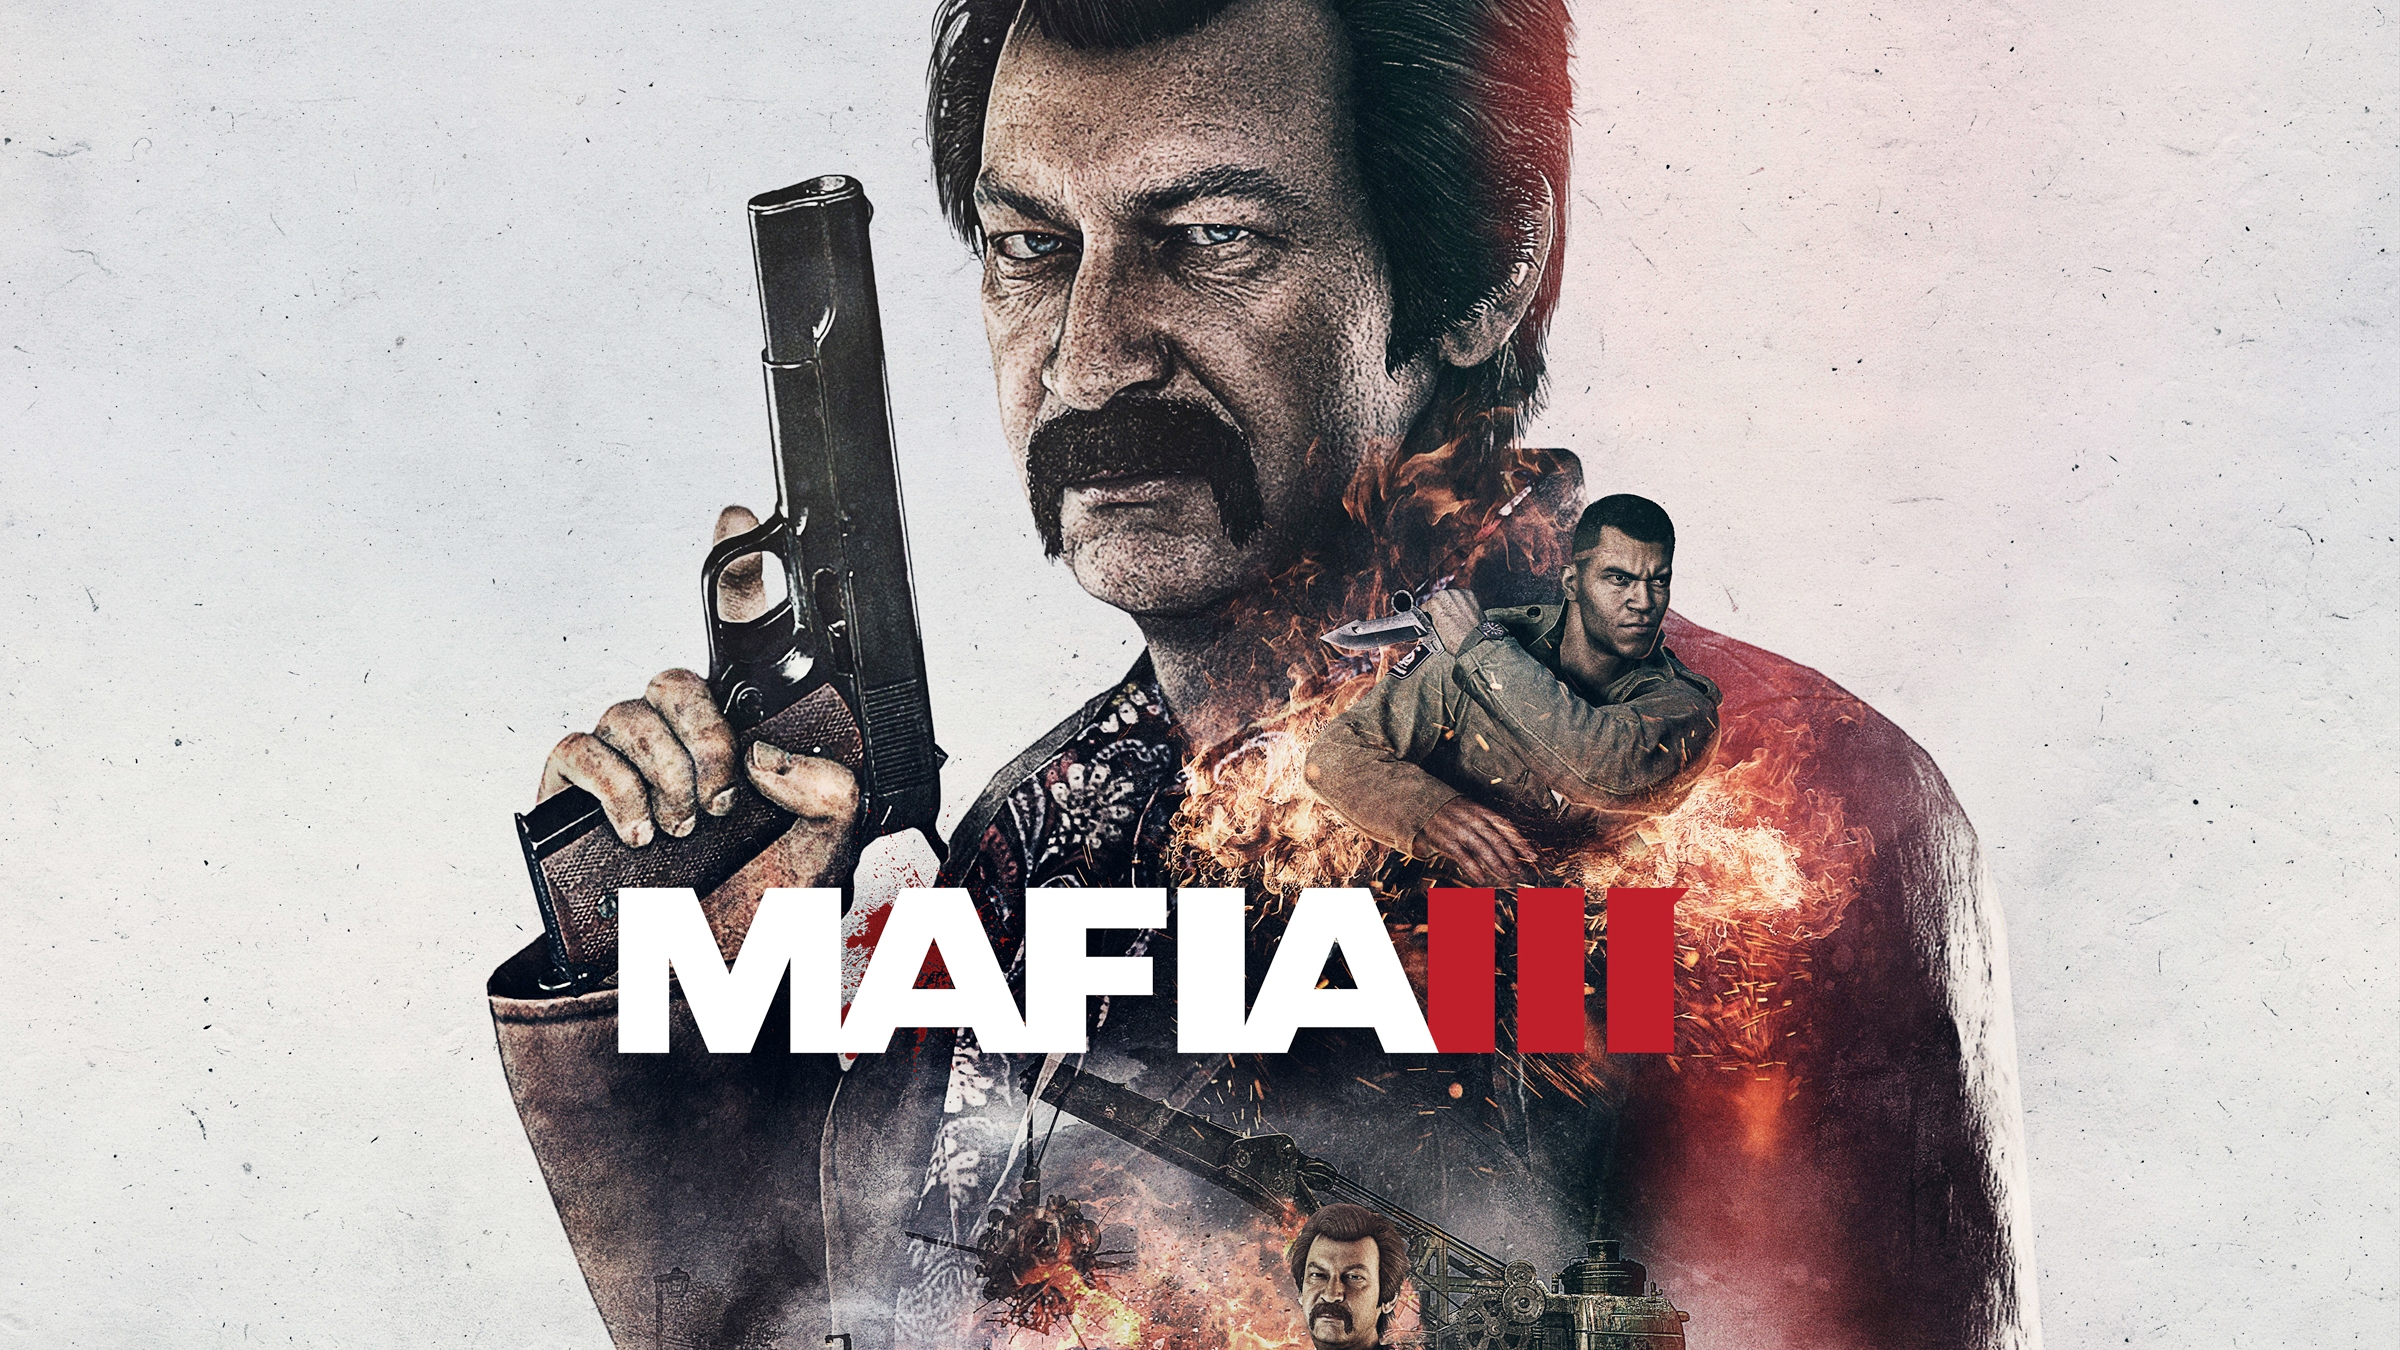 mafia iii wallpapers pictures images